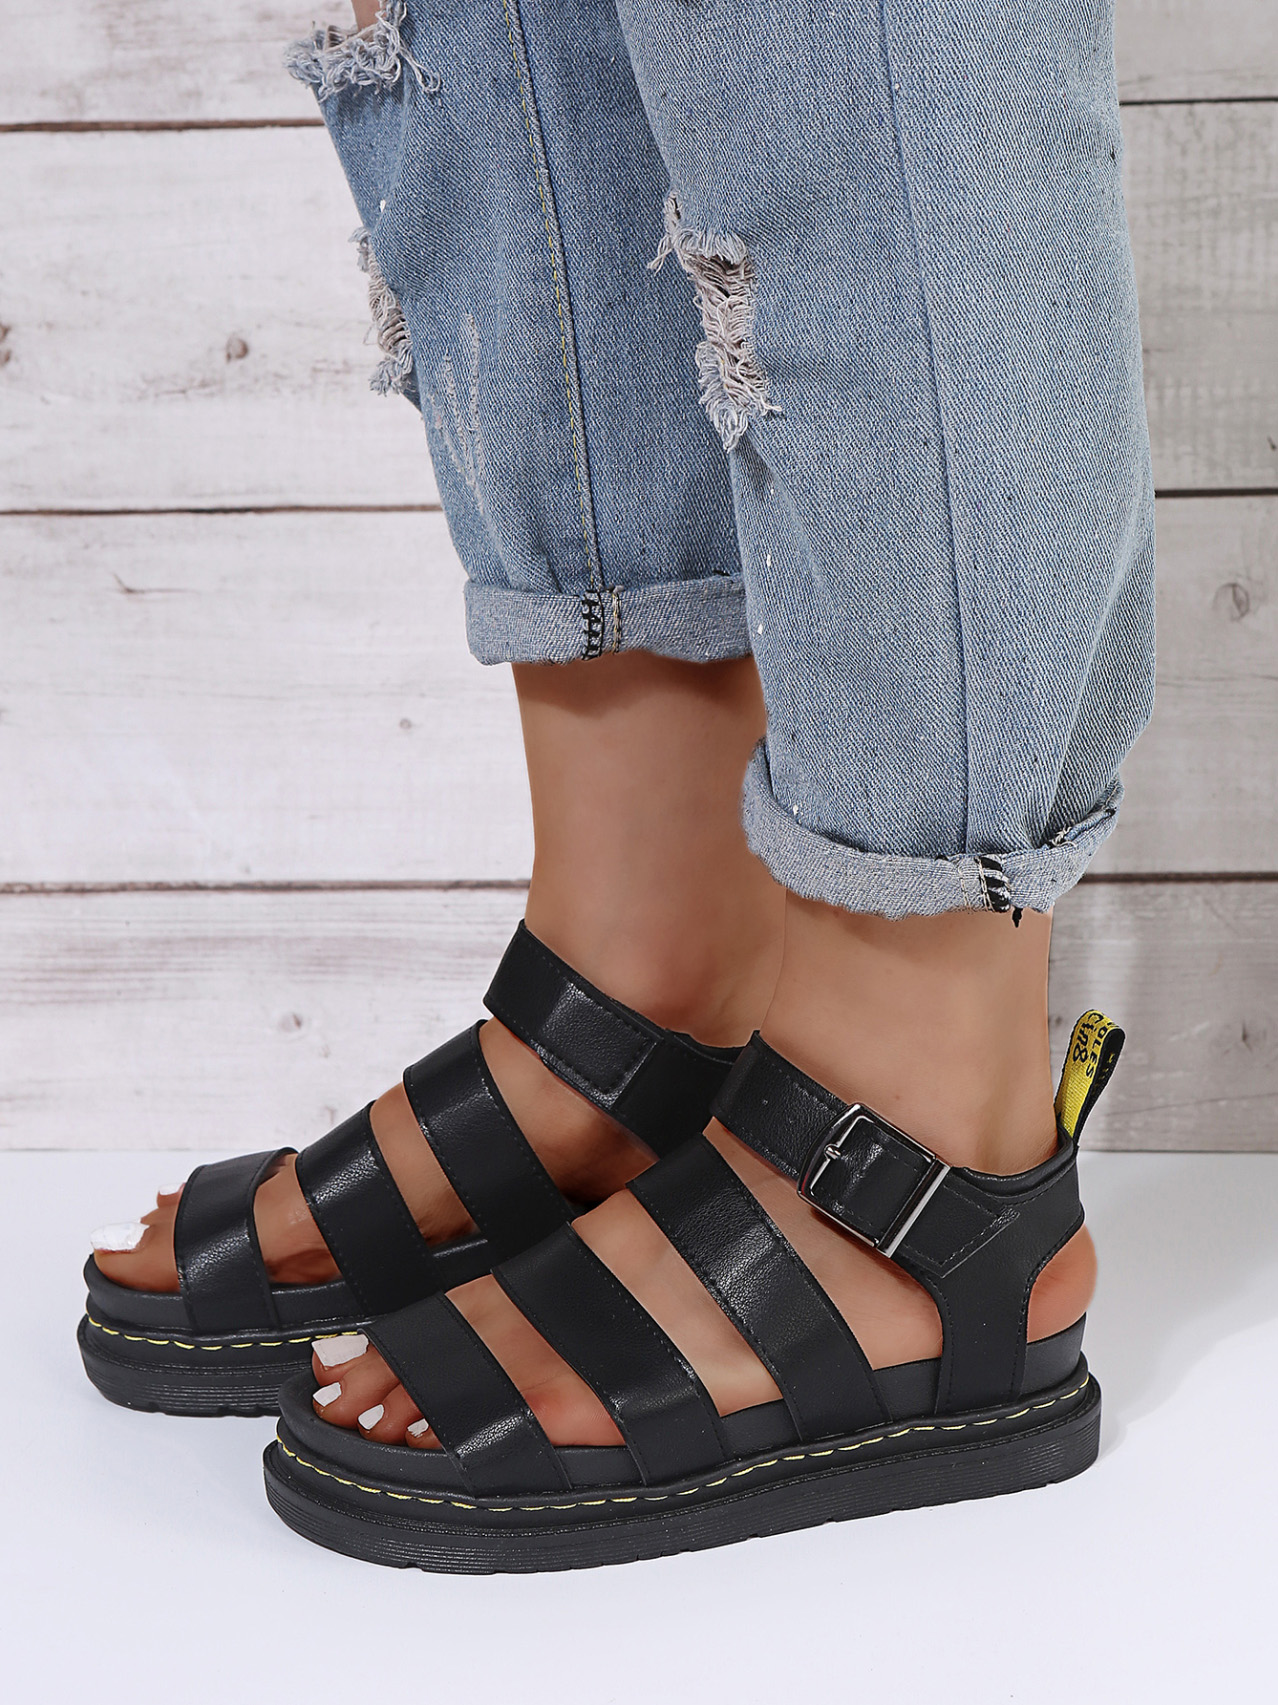 Hollow Out Round Toe Sandals For Girls